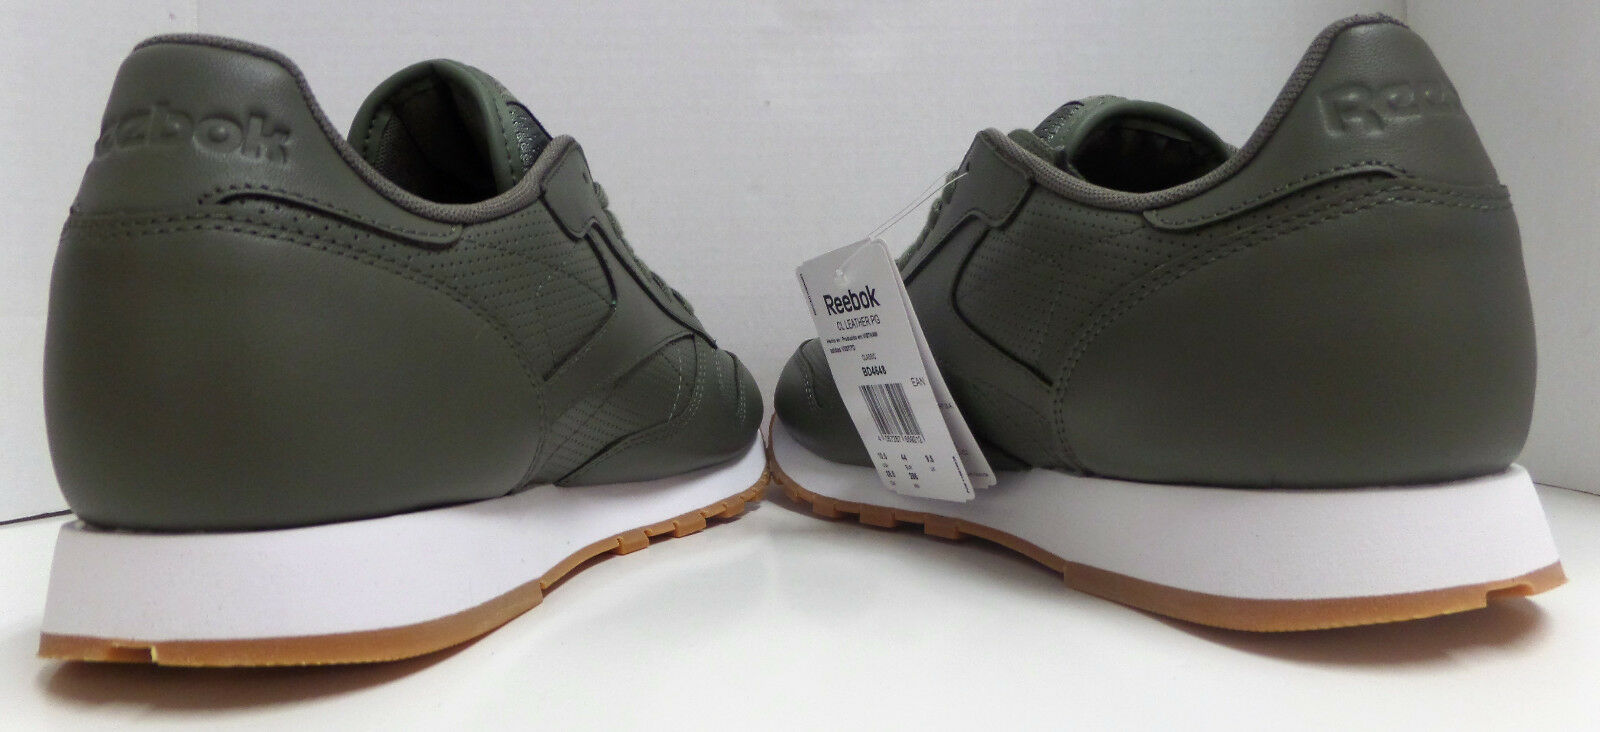 537e62c70bc Reebok Classic Leather PG Olive Green White Trainer Shoe US 10.5   EUR 44  BD4648 for sale online